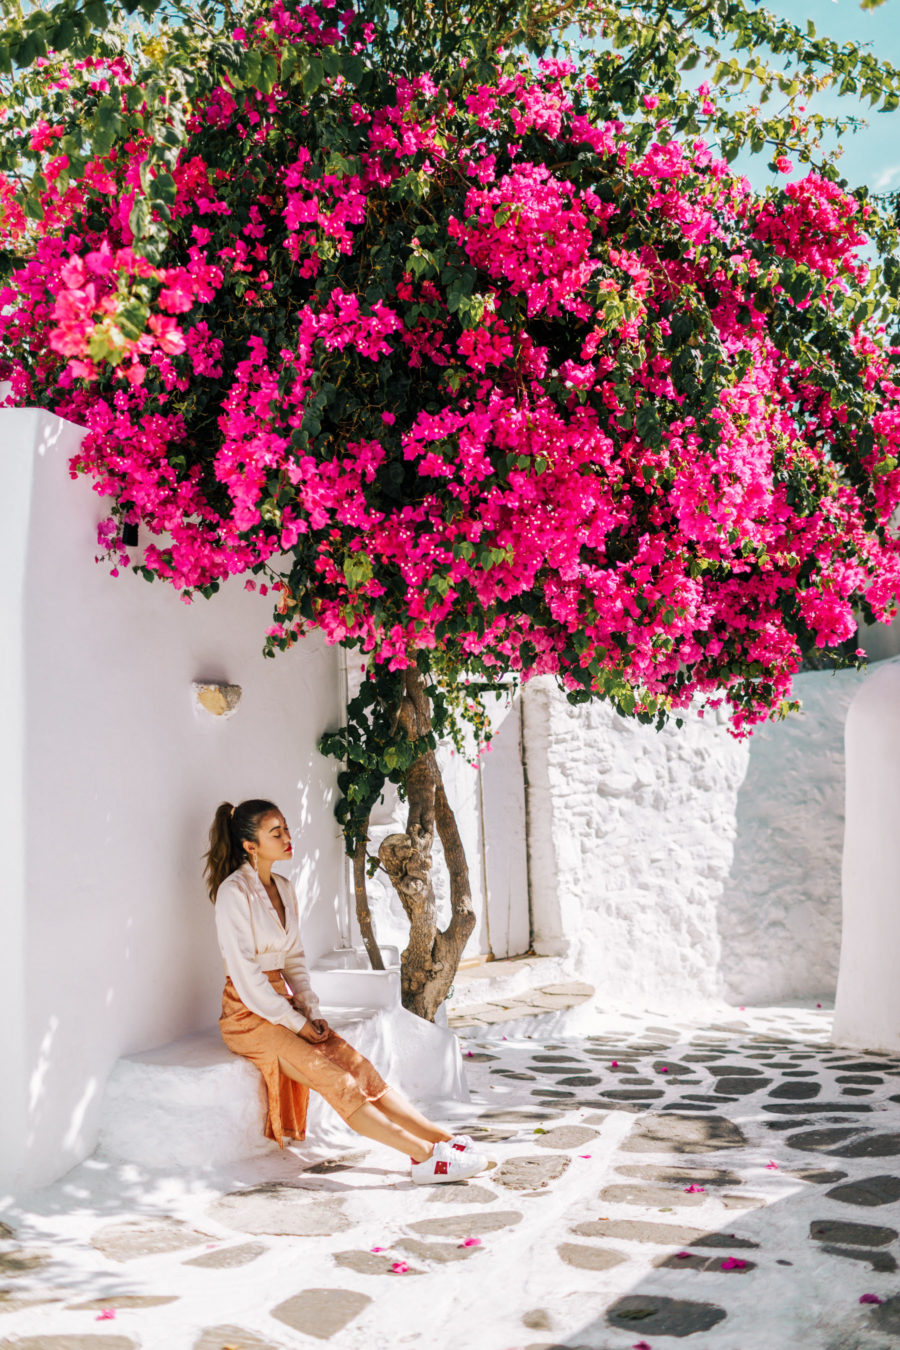 Most Instagrammable Spot In Mykonnos // NotJessFashion.com